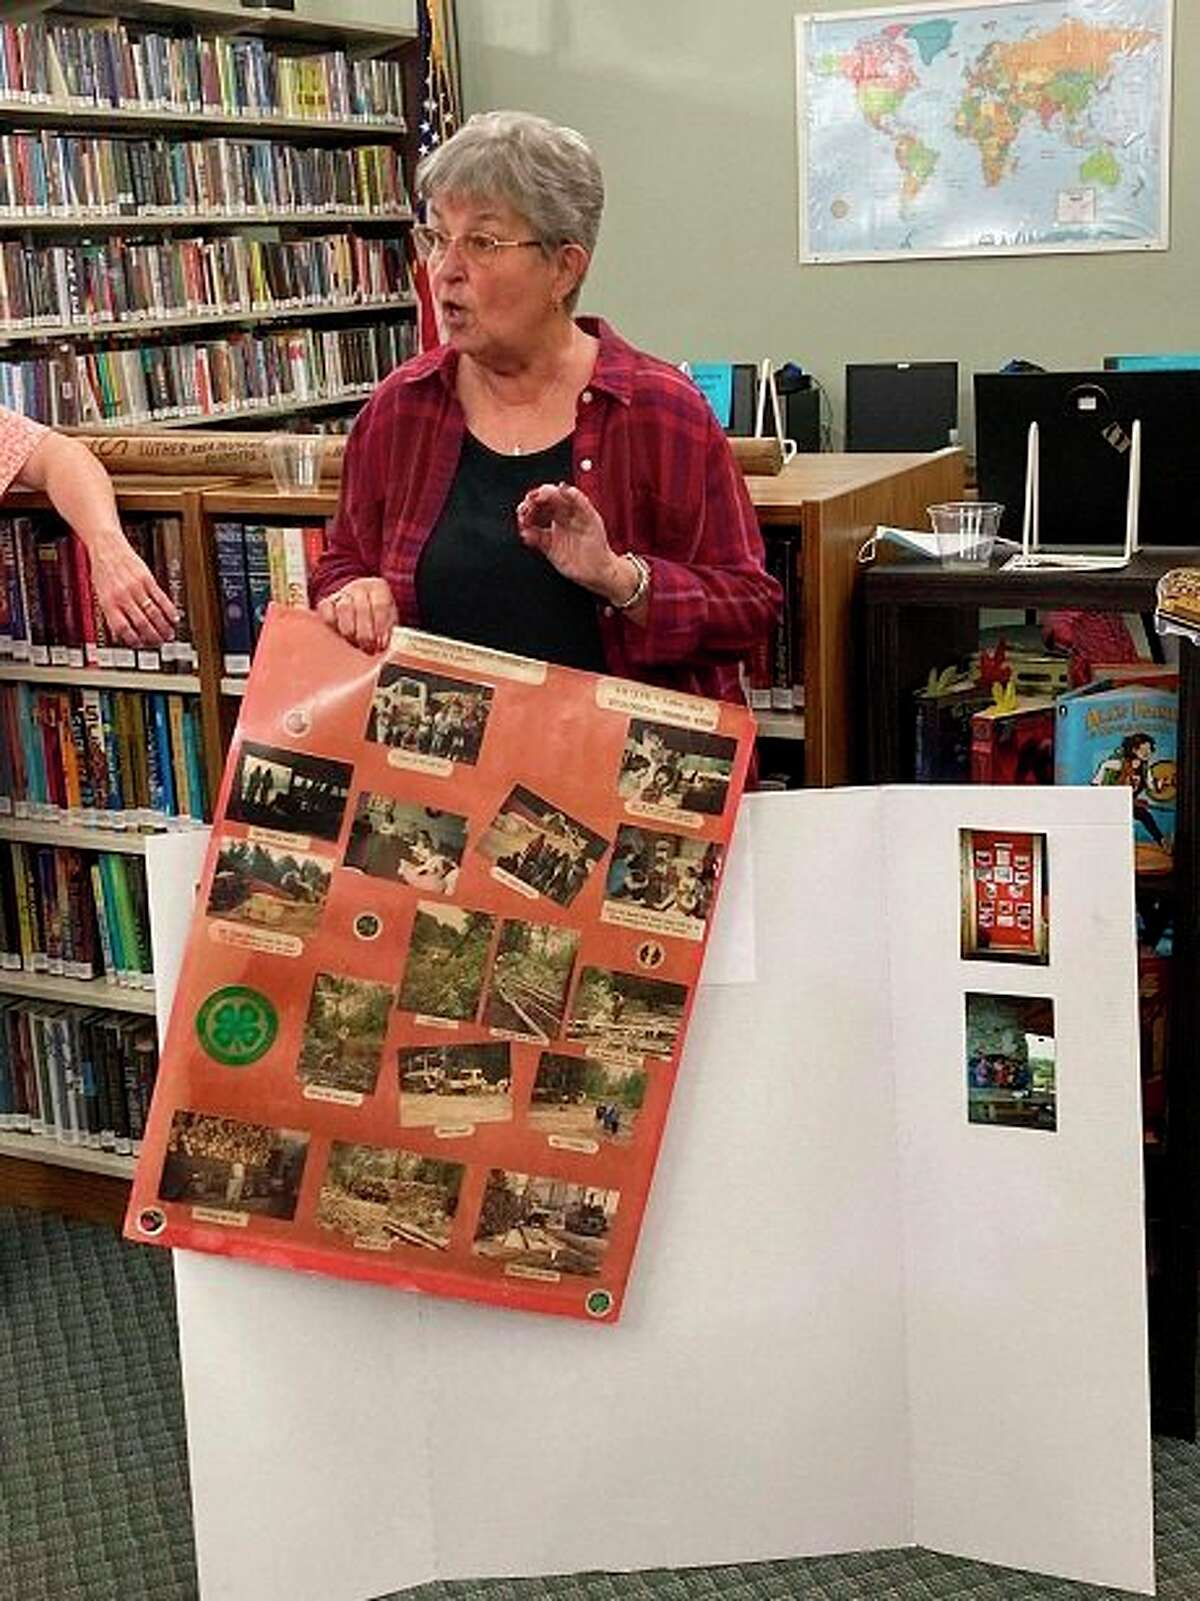 Karen Neiger, a fount of knowledge when it comes to logging, shared a presentation with the public at the Luther Area Public Library. (Courtesy photo)